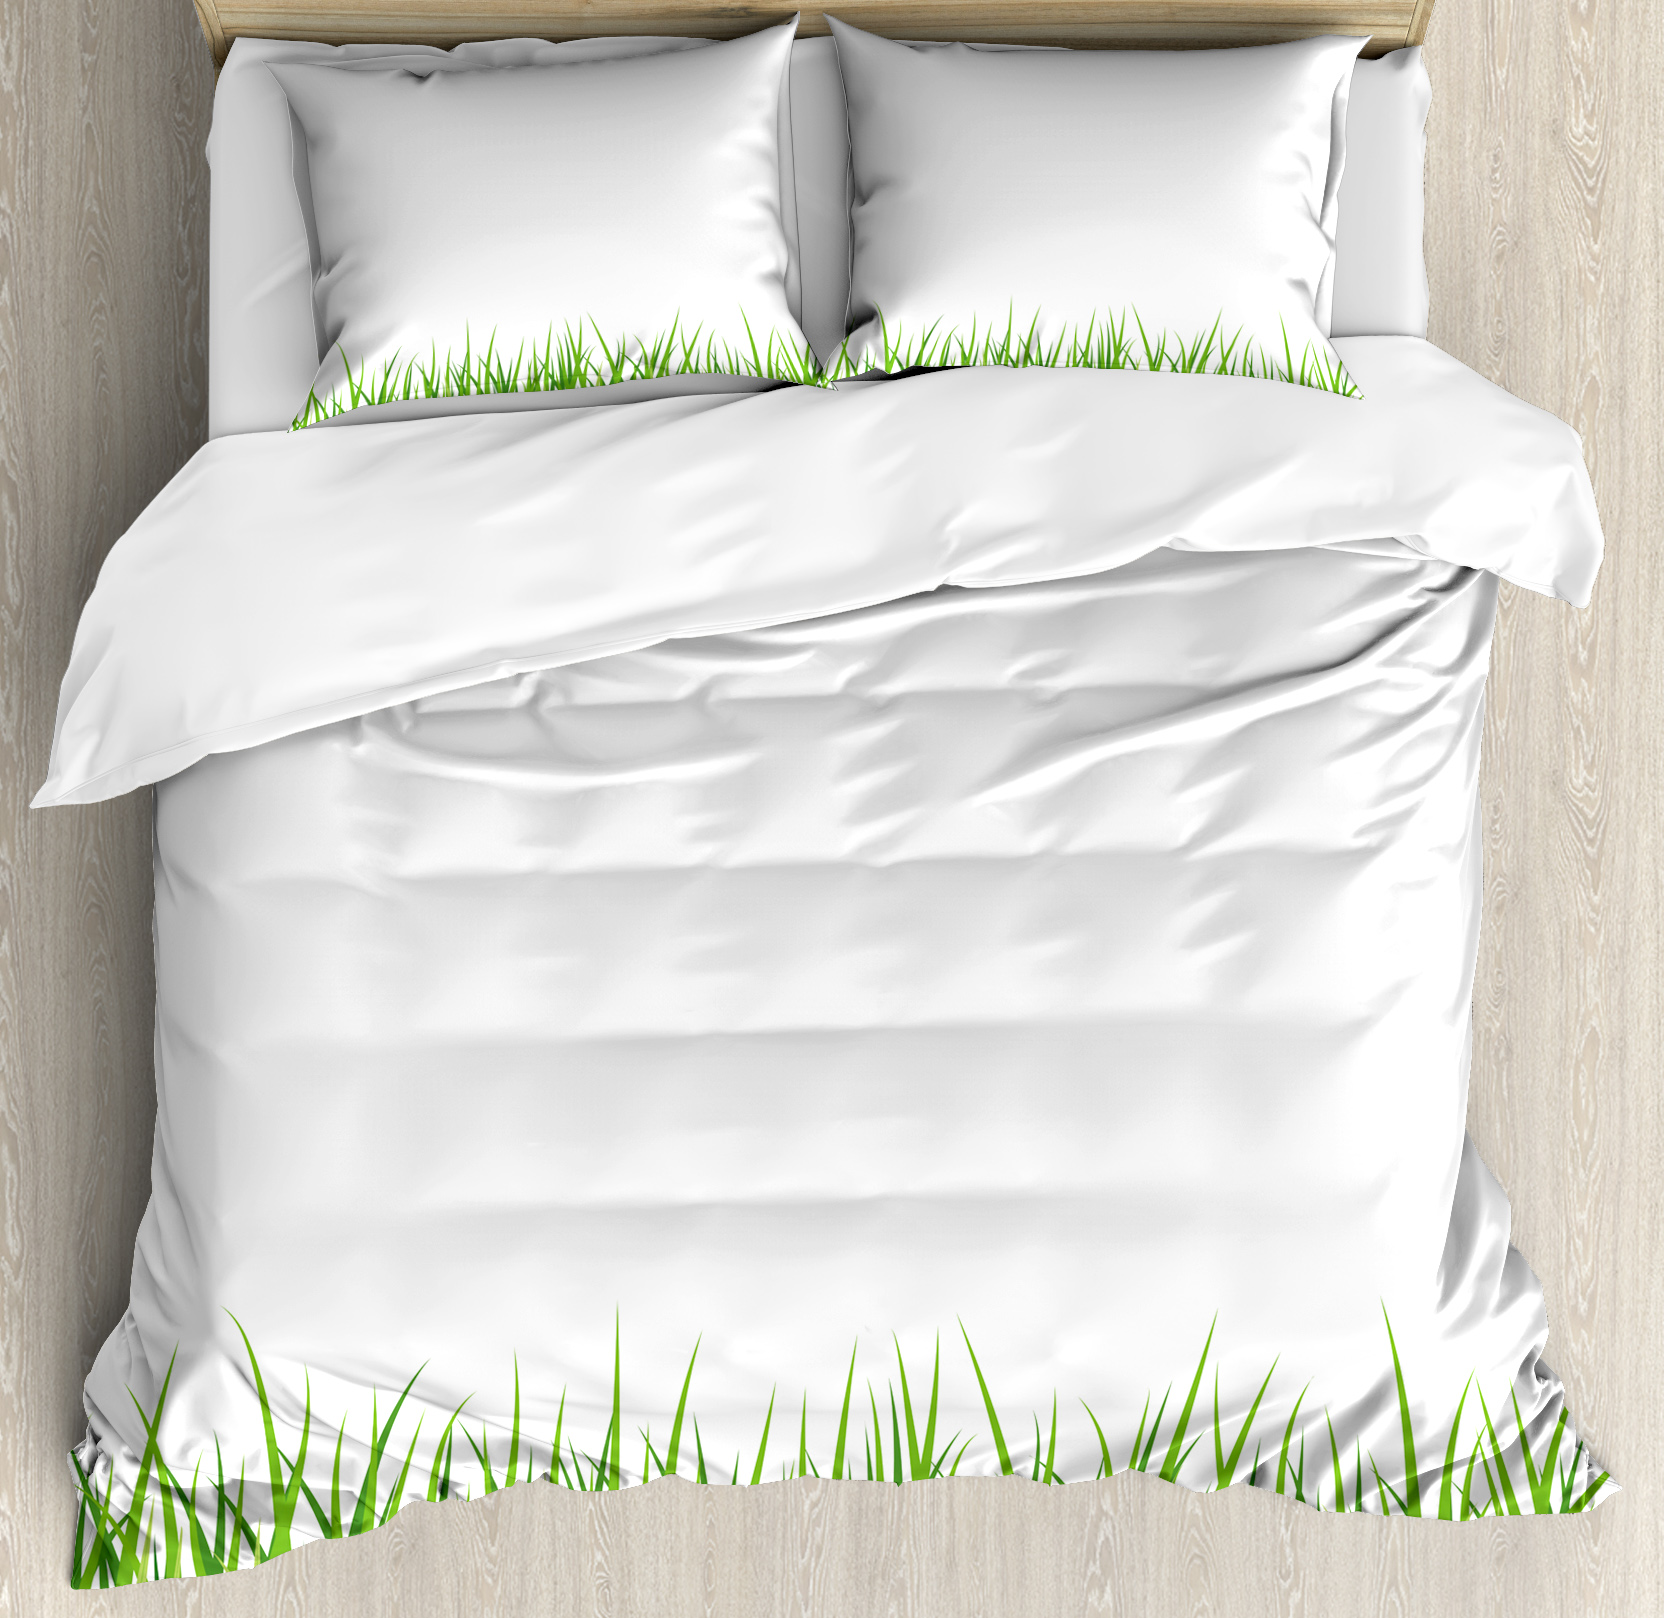 Green Duvet Cover Set Fresh Gr Lawn Horizontal Pattern Nature Outdoors Meadow Lush Gardening Theme Decorative Bedding With Pillow Shams